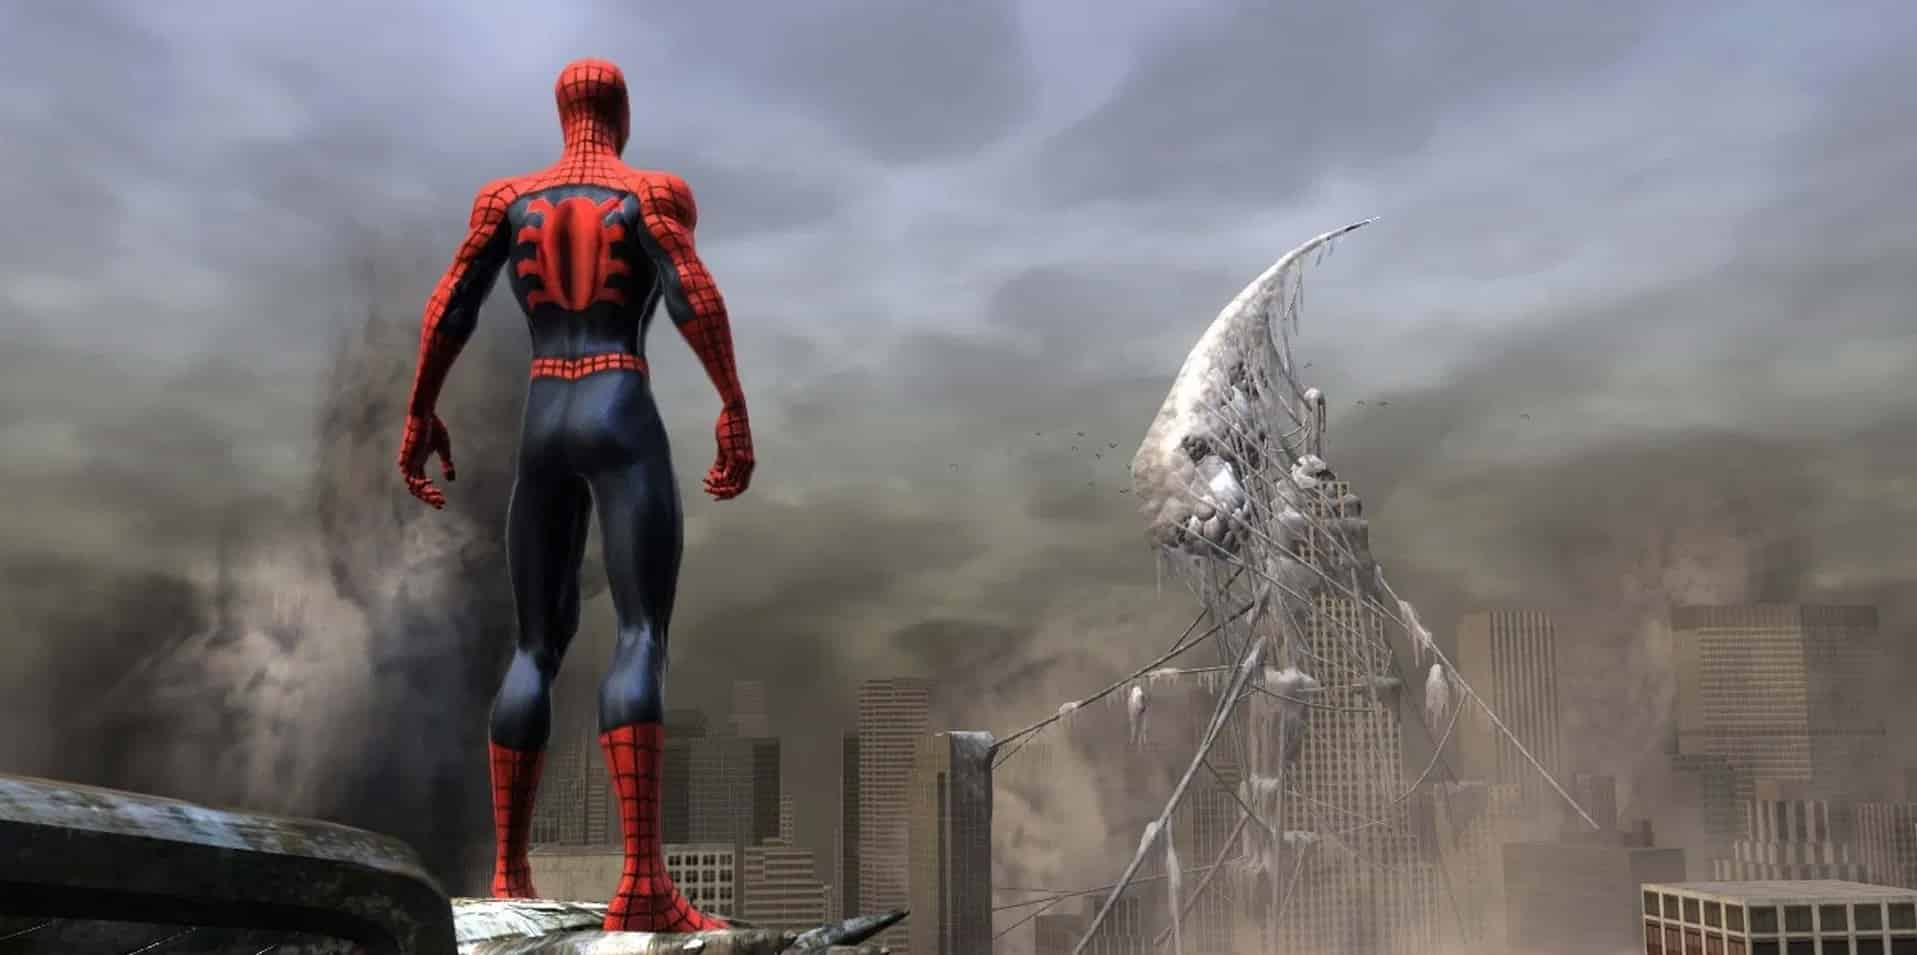 Spider-Man: Web of Shadows Treyarch open-world sandbox gameplay with moral consequences, Wolverine, Moon Knight, and Black Cat